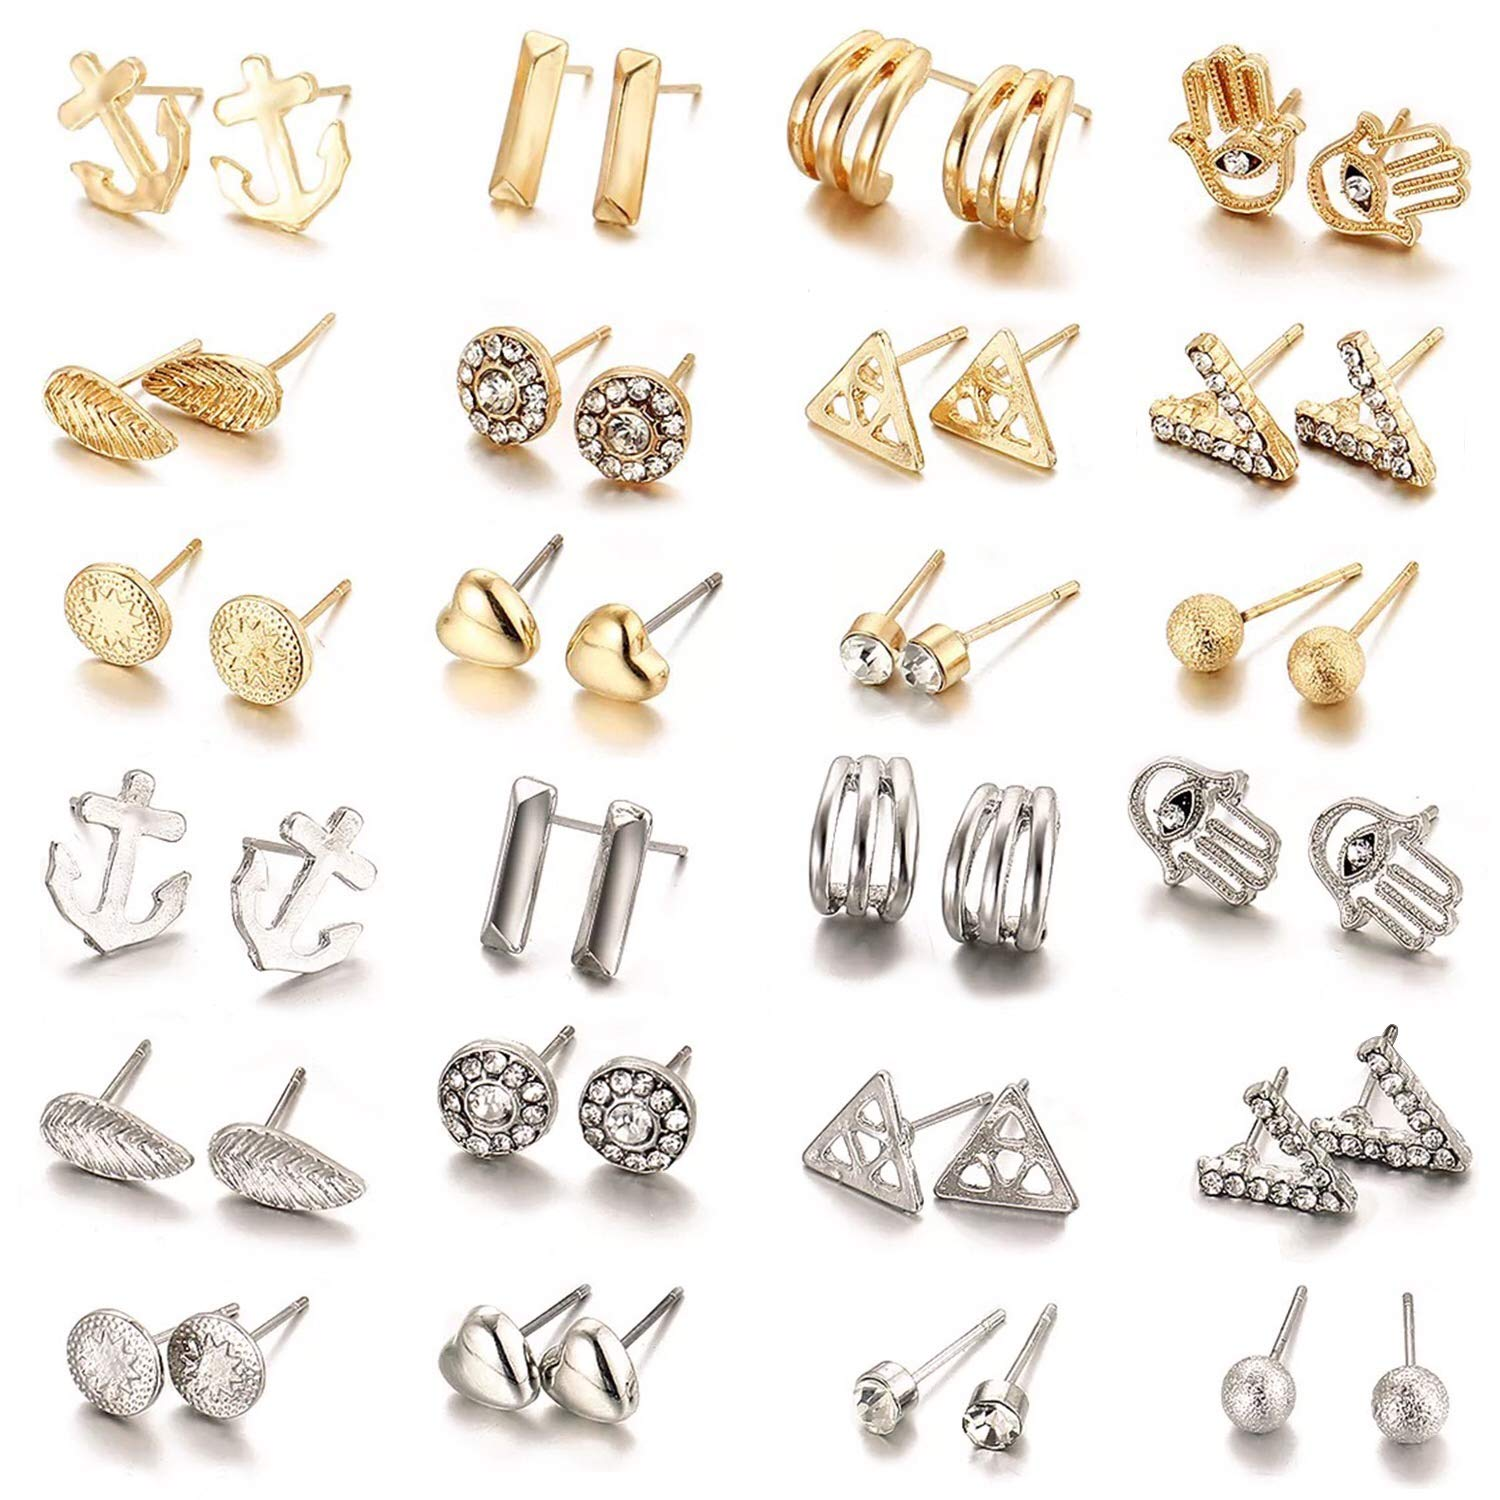 Top 10 Best Earrings for Sensitive Ears - Hypoallergenic Earrings 5